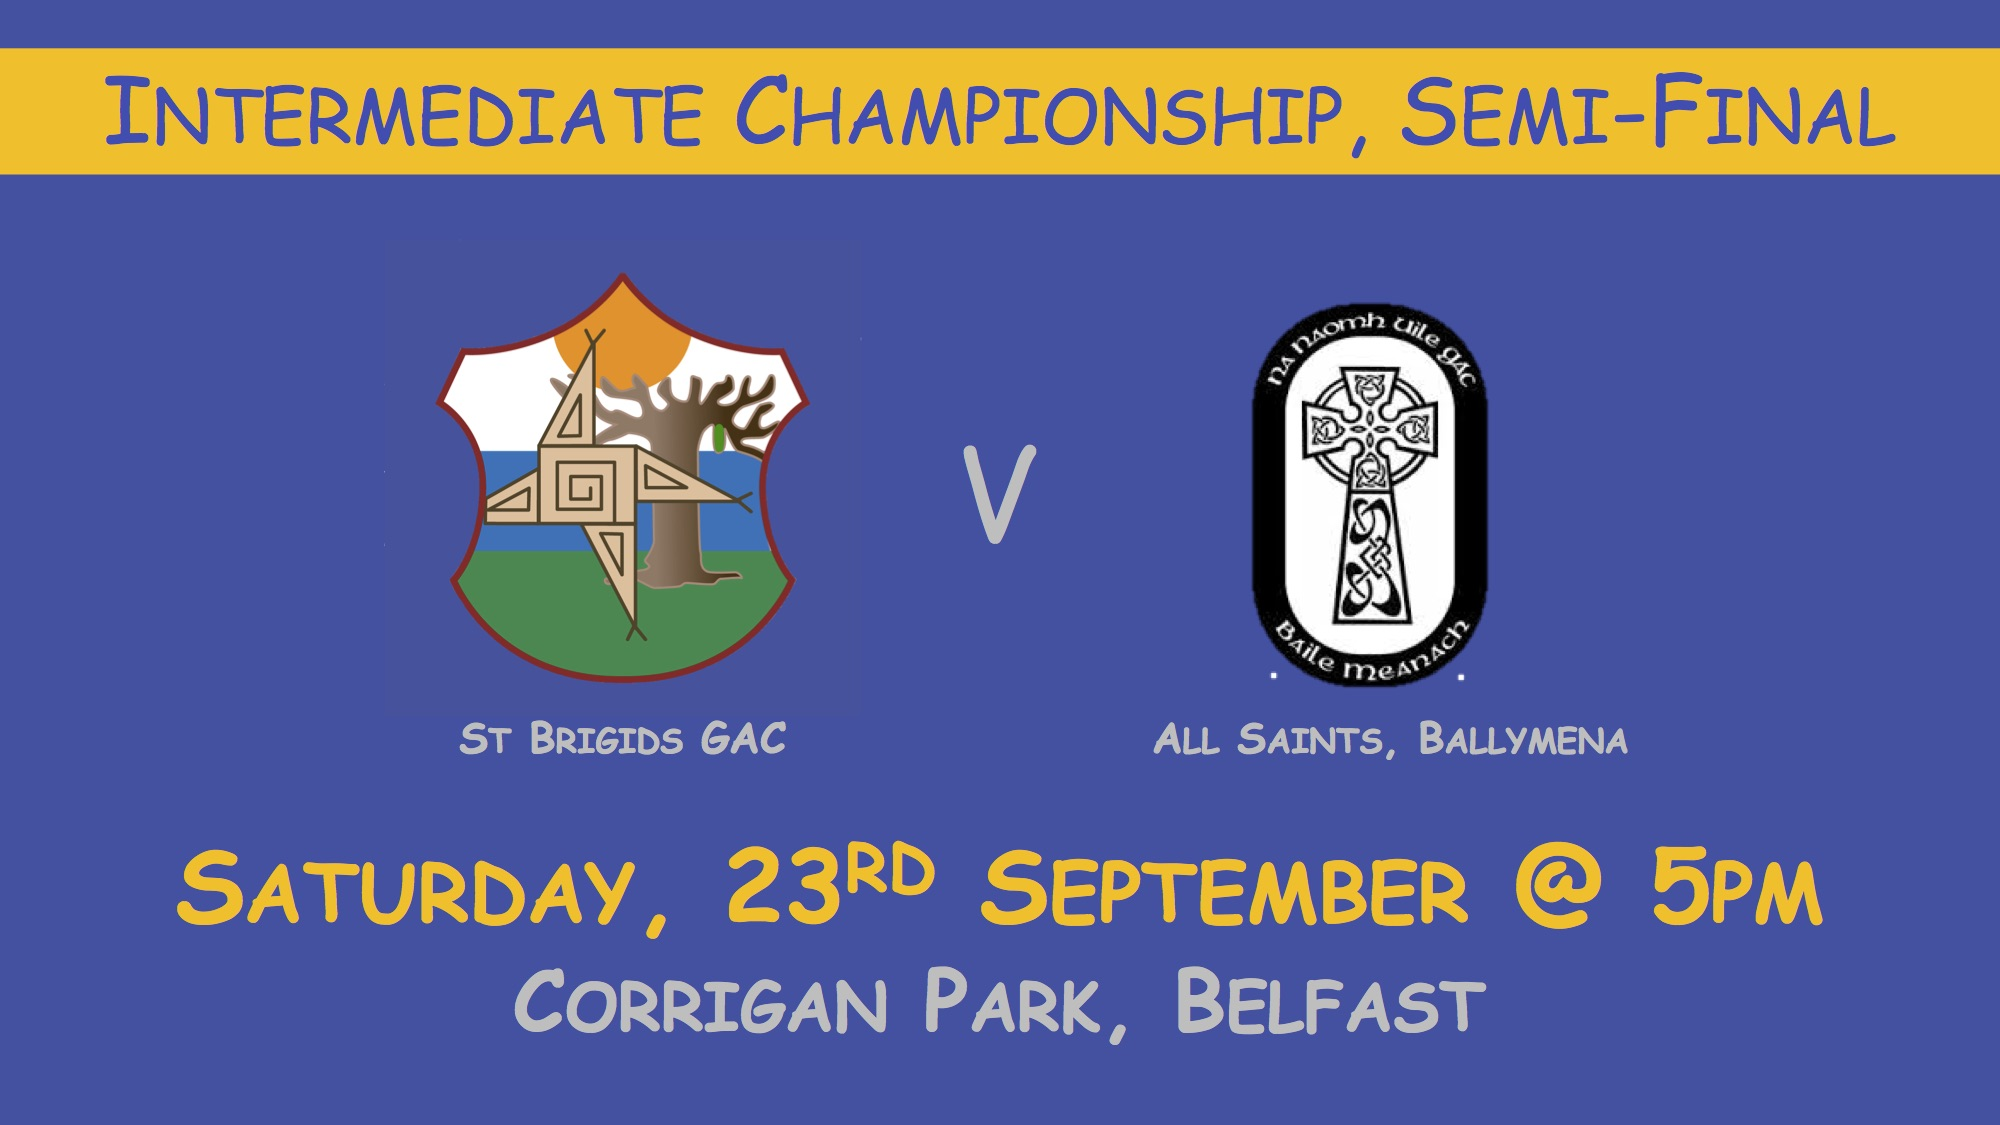 Intermediate Championship Semi-Final, Saturday 23rd